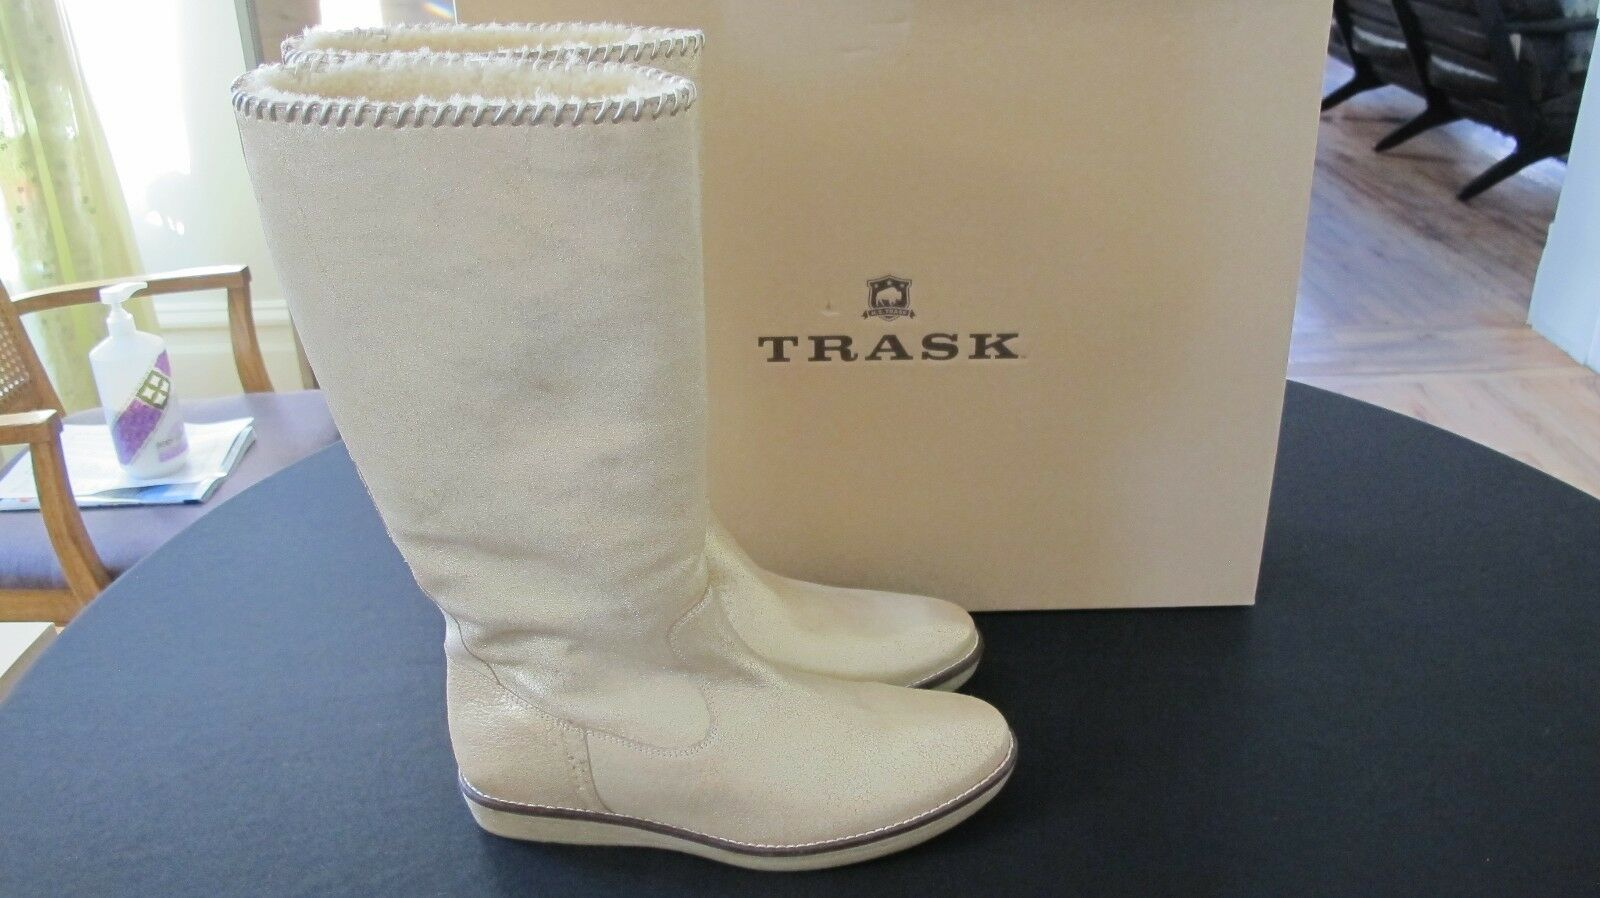 H.S. TRASK ARIANA SHEARLING gold ITALIAN BRUSH OFF INSIDE ZIP BOOTS Sz 9.5 M NWB